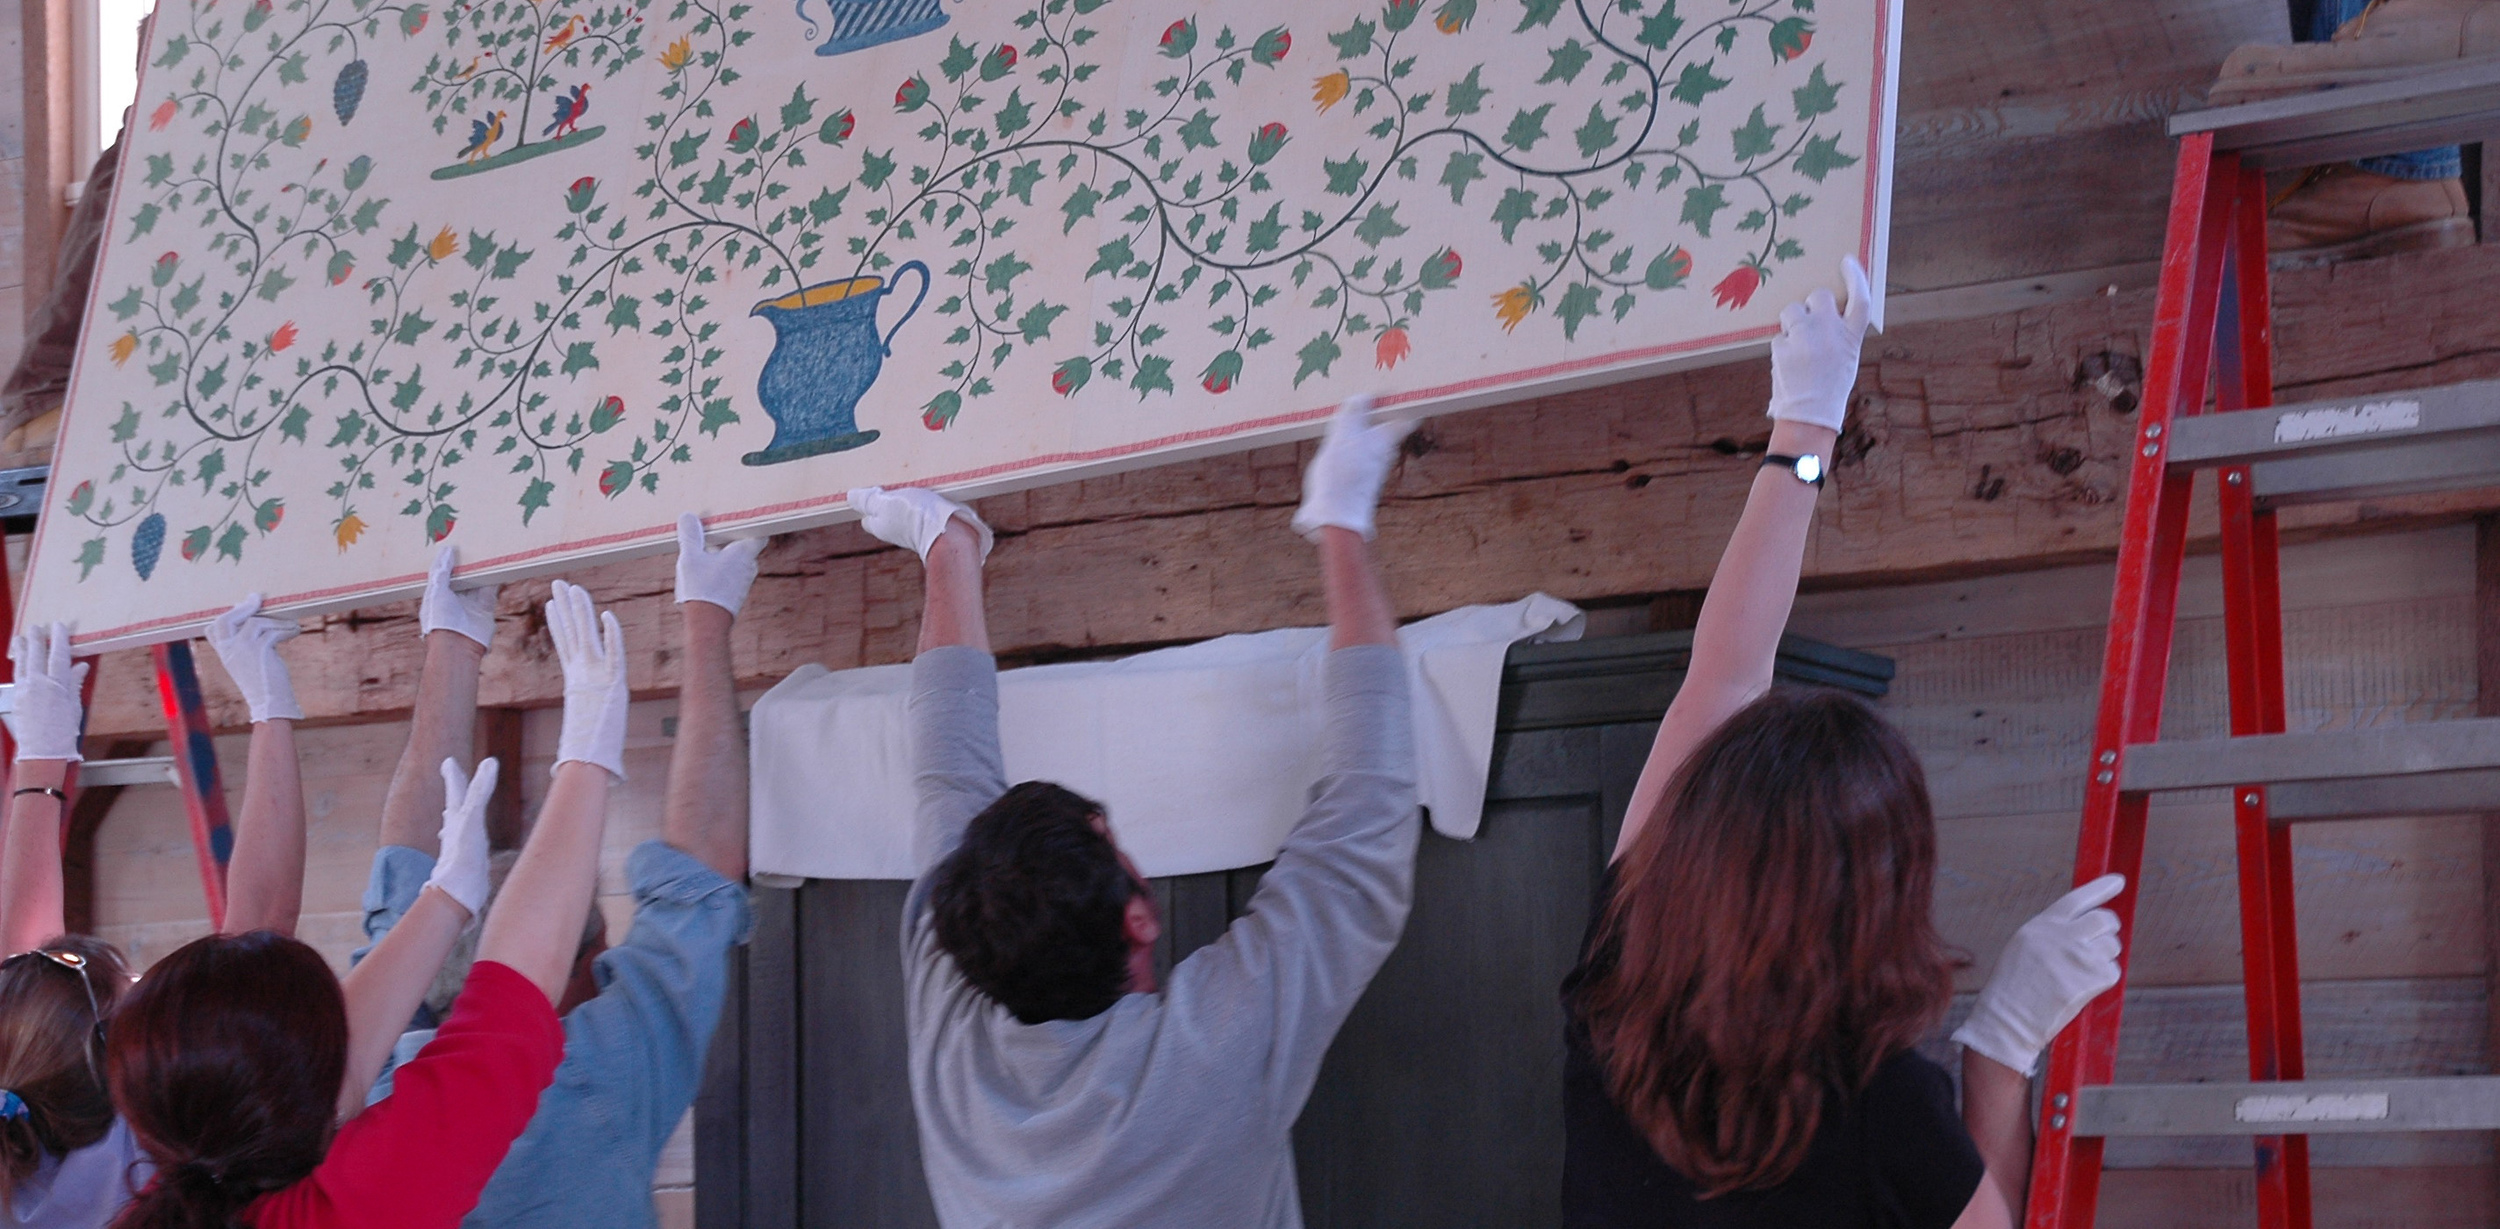 Conservators are assisted by art handlers as they hoist a large-mounted quilt onto its exhibition space.